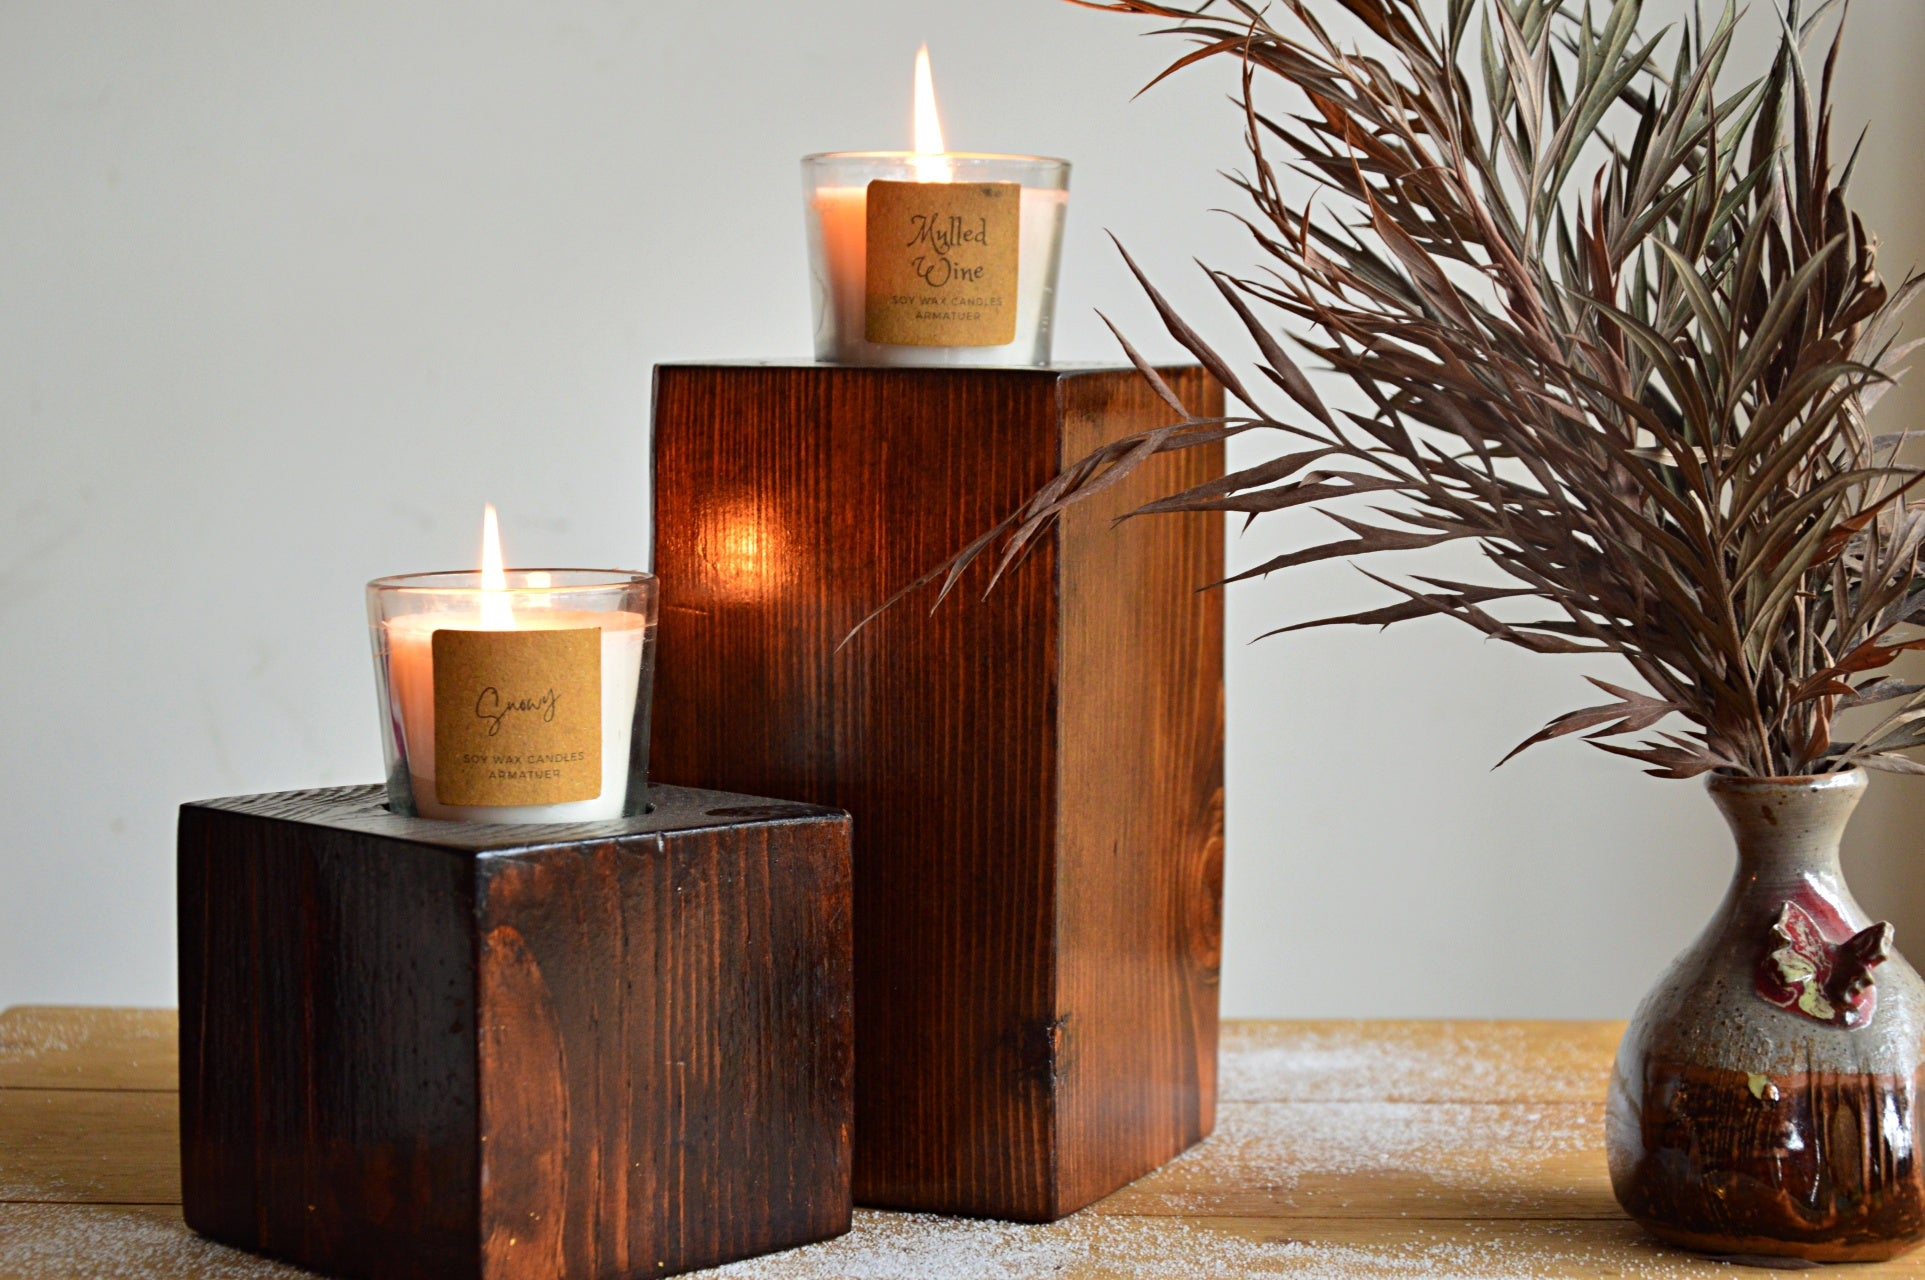 Wooden Candle Holders | Snowy & Mulled Wine